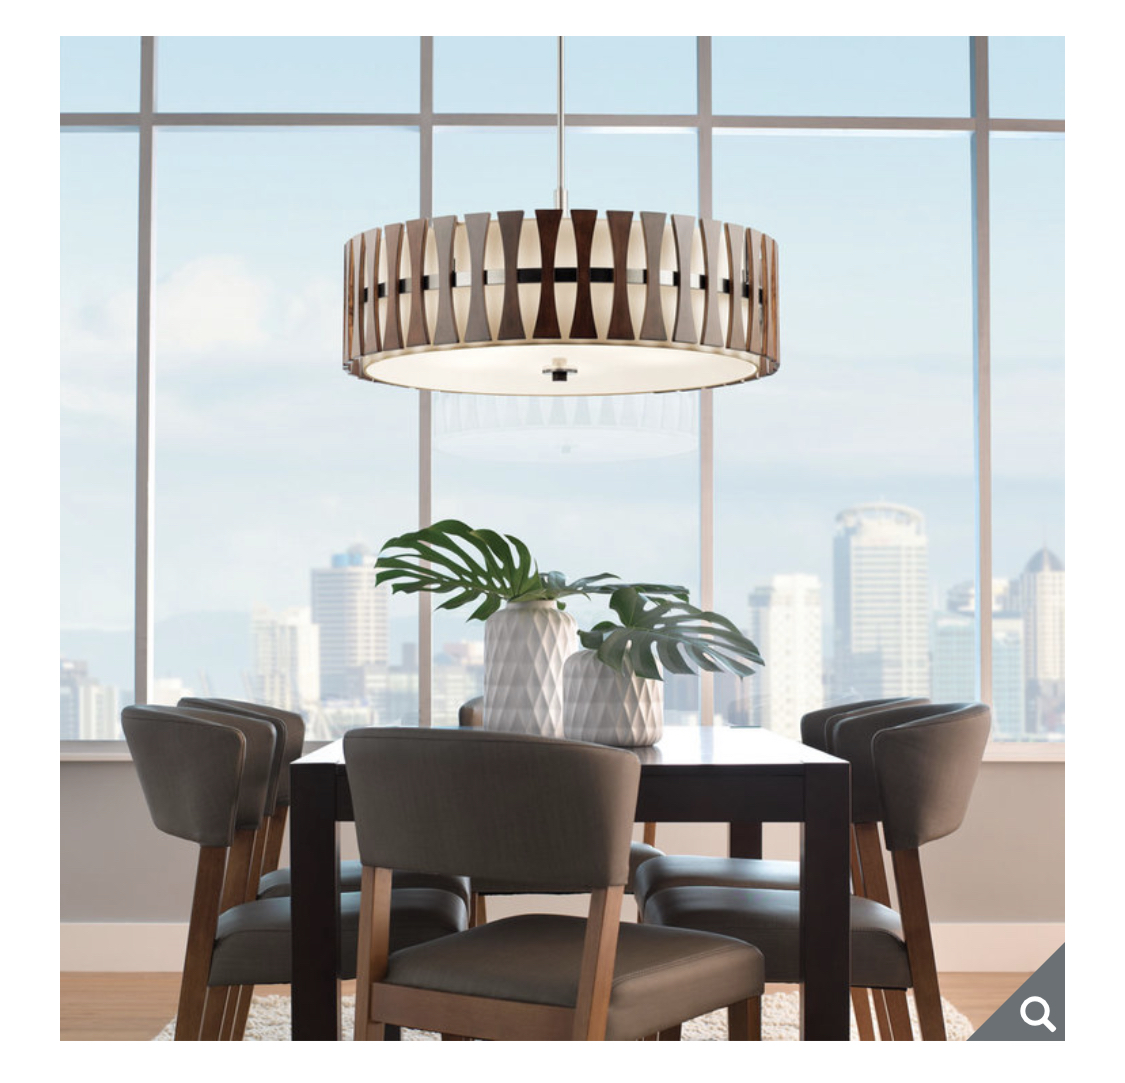 Kichler Cirus Five Light Pendant/Semi Flush Ceiling Light in Auburn Stained Wood